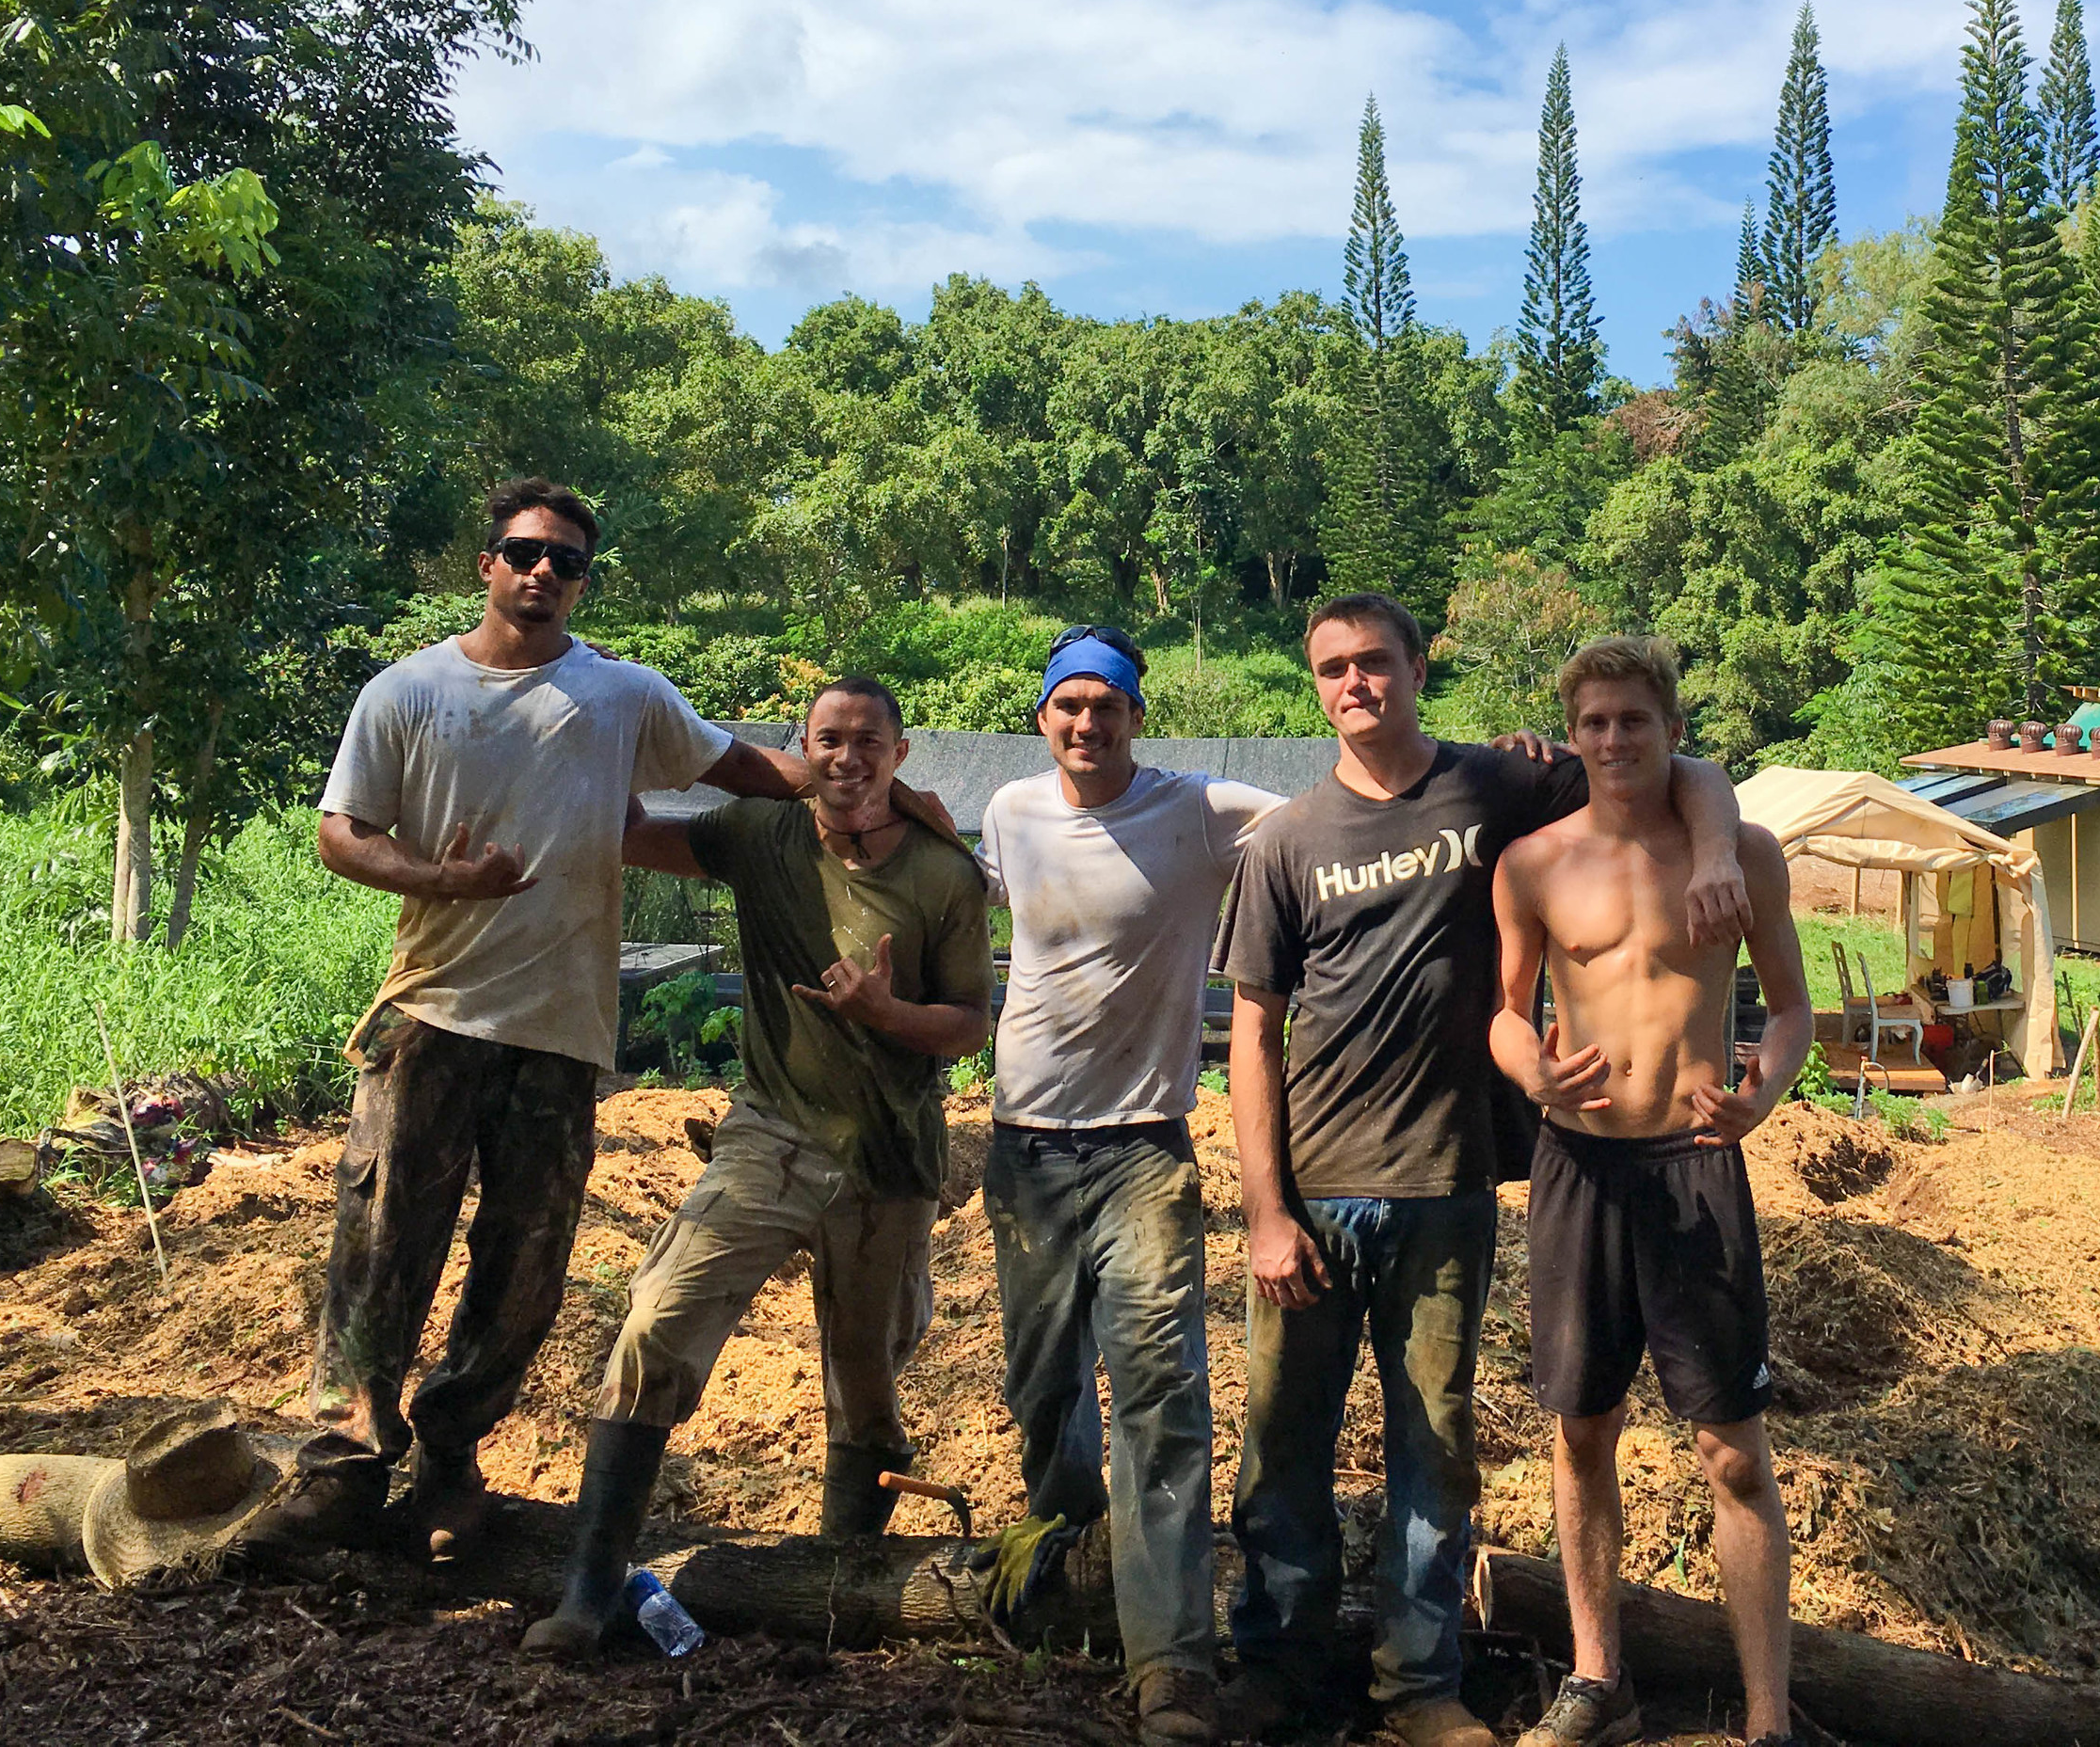 Hawaii Community Jiu-Jitsu working at the Naikela farm